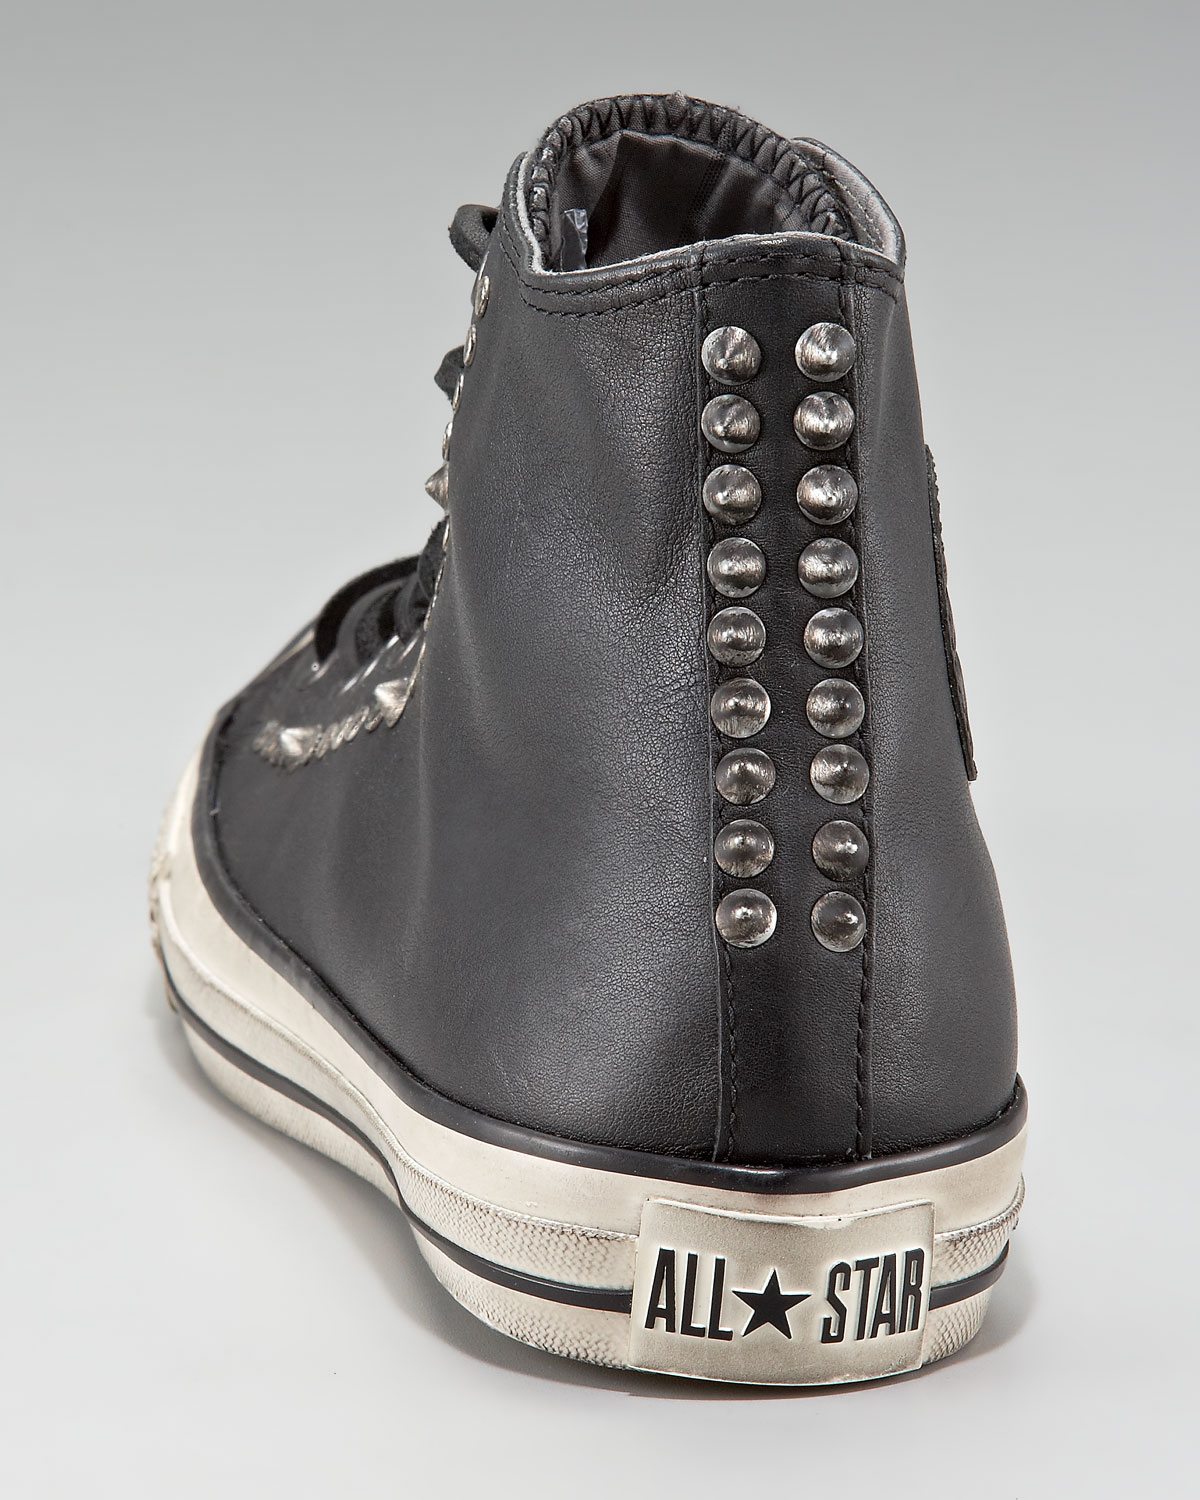 ... Lyst - Converse Studded Leather Hi-top in Black for Men 100% authentic  dd01f ... 6f34bc12d